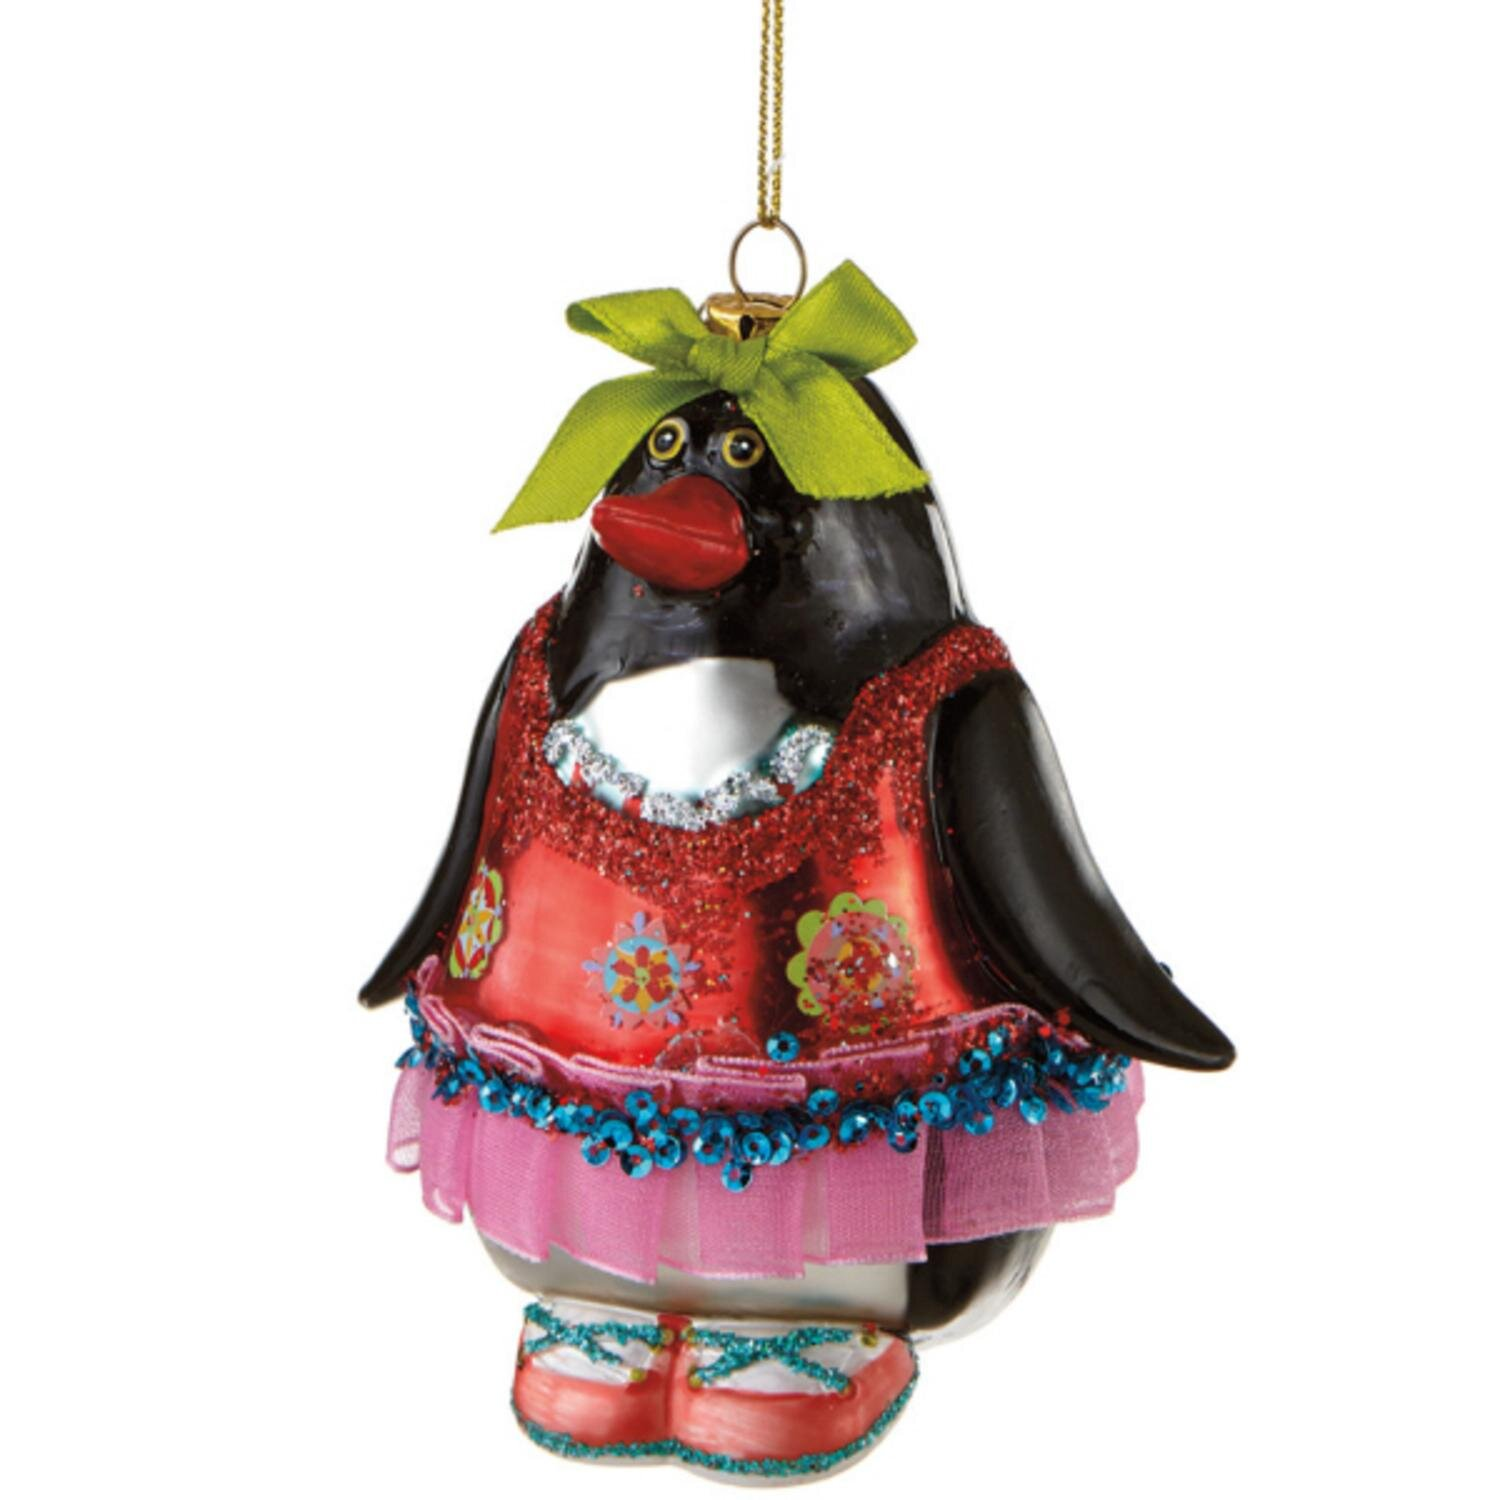 Animal Pink Christmas Ornaments You Ll Love In 2021 Wayfair